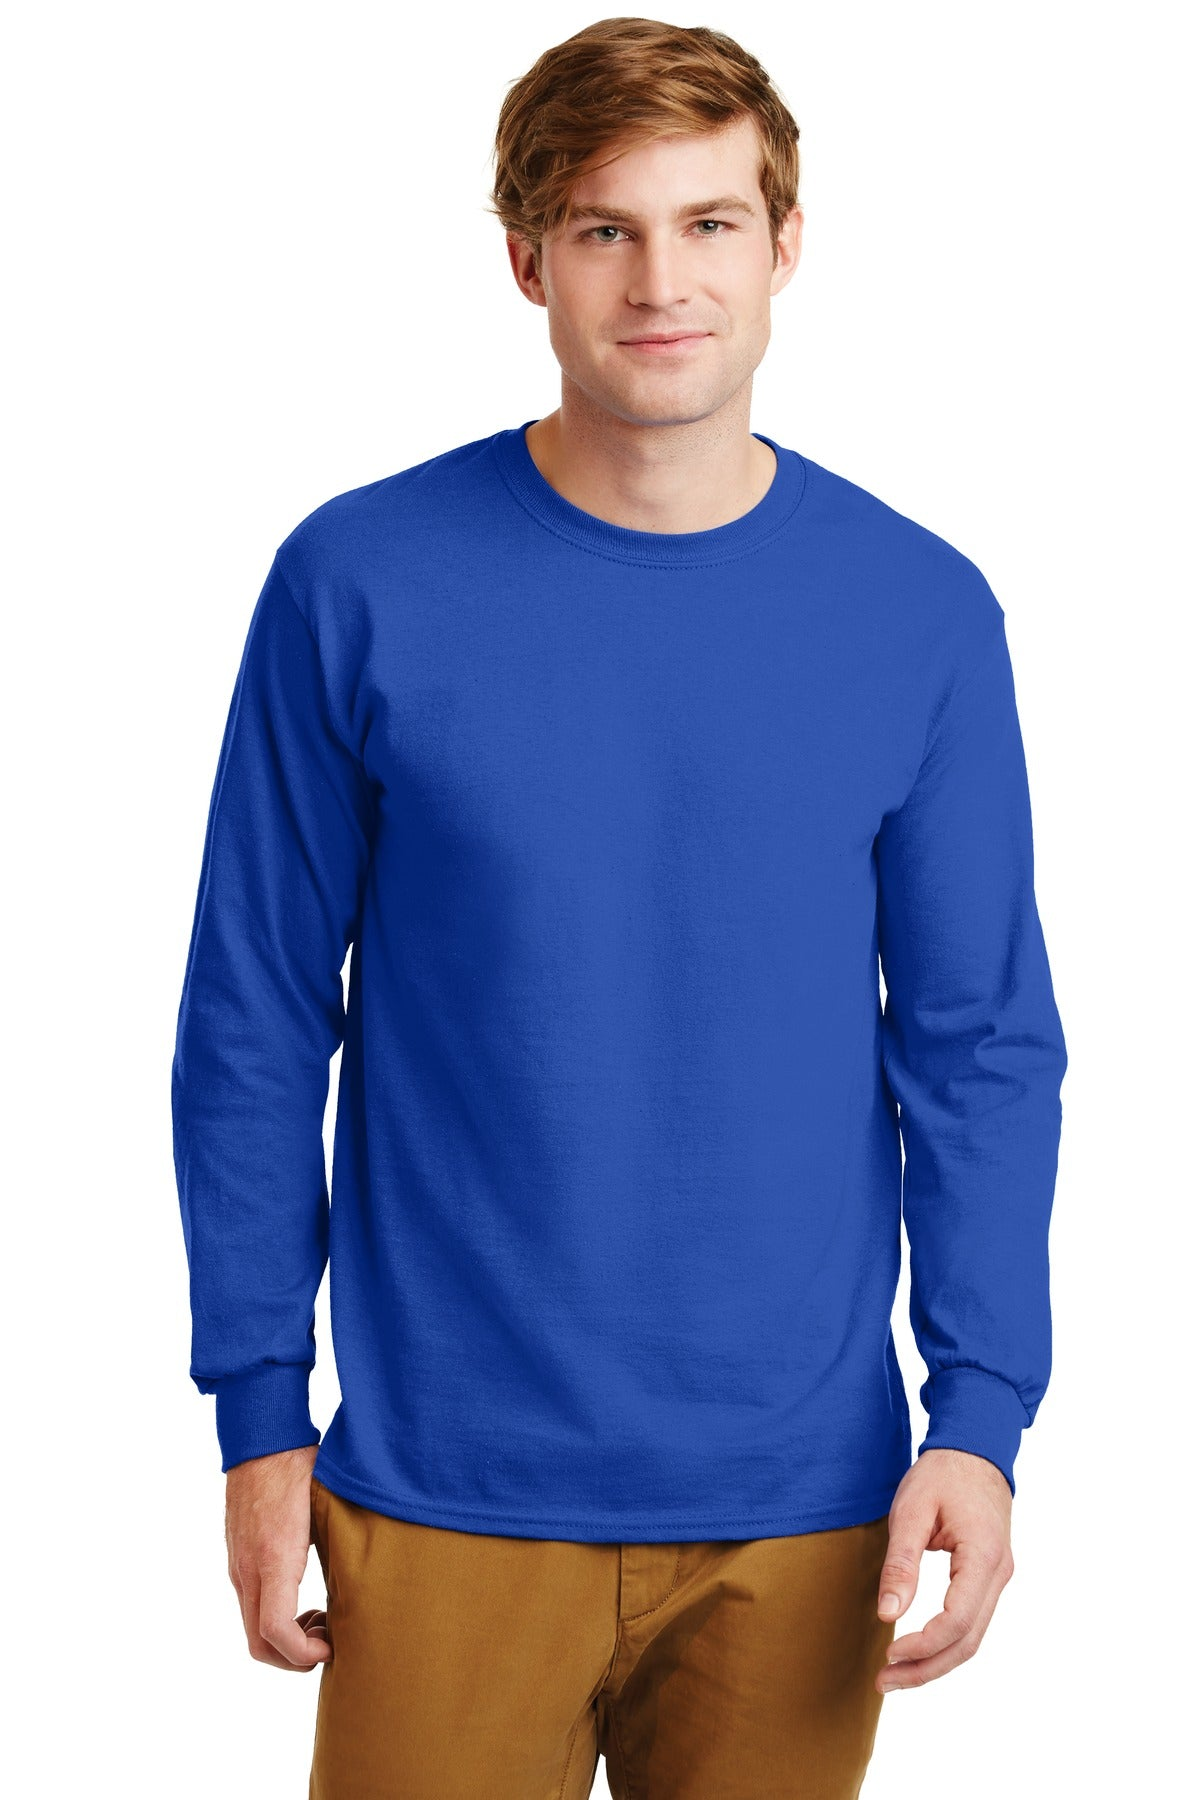 Royal Gildan Ultra Cotton 100% Cotton Long Sleeve T-Shirt.